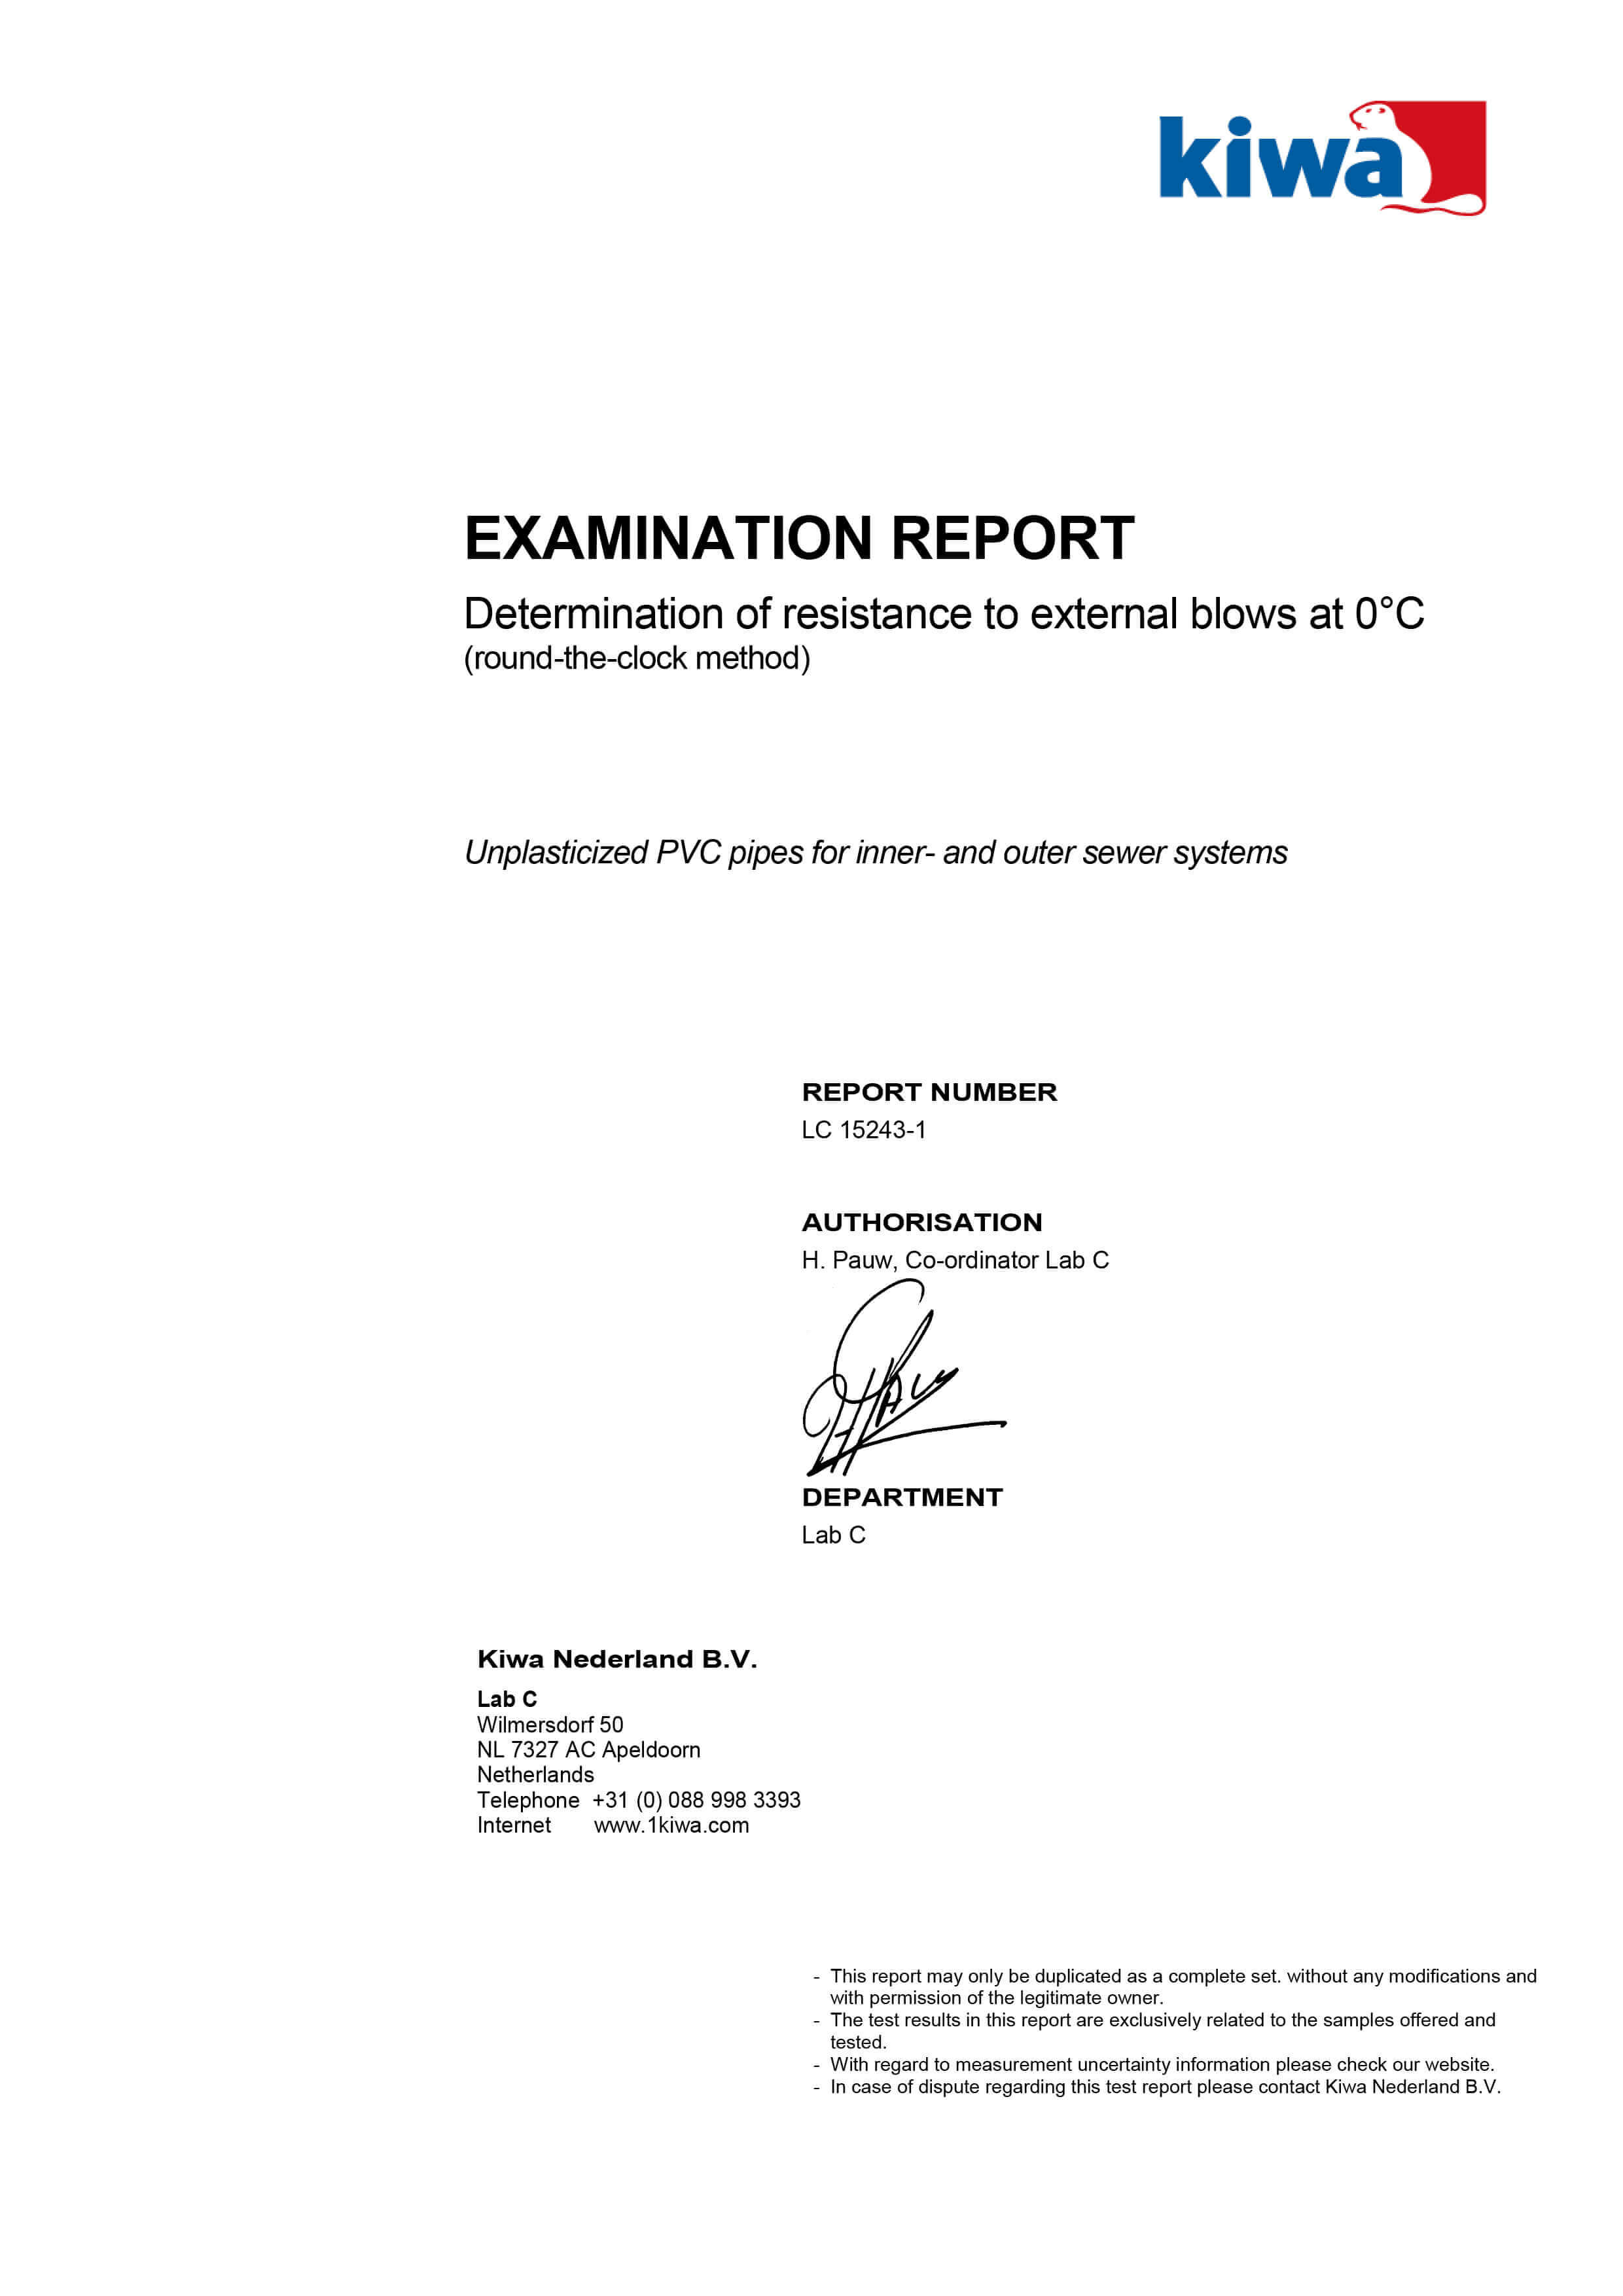 Haykal Plast Examination Report - Determination of resistance to external blows at 0 degrees C - 1